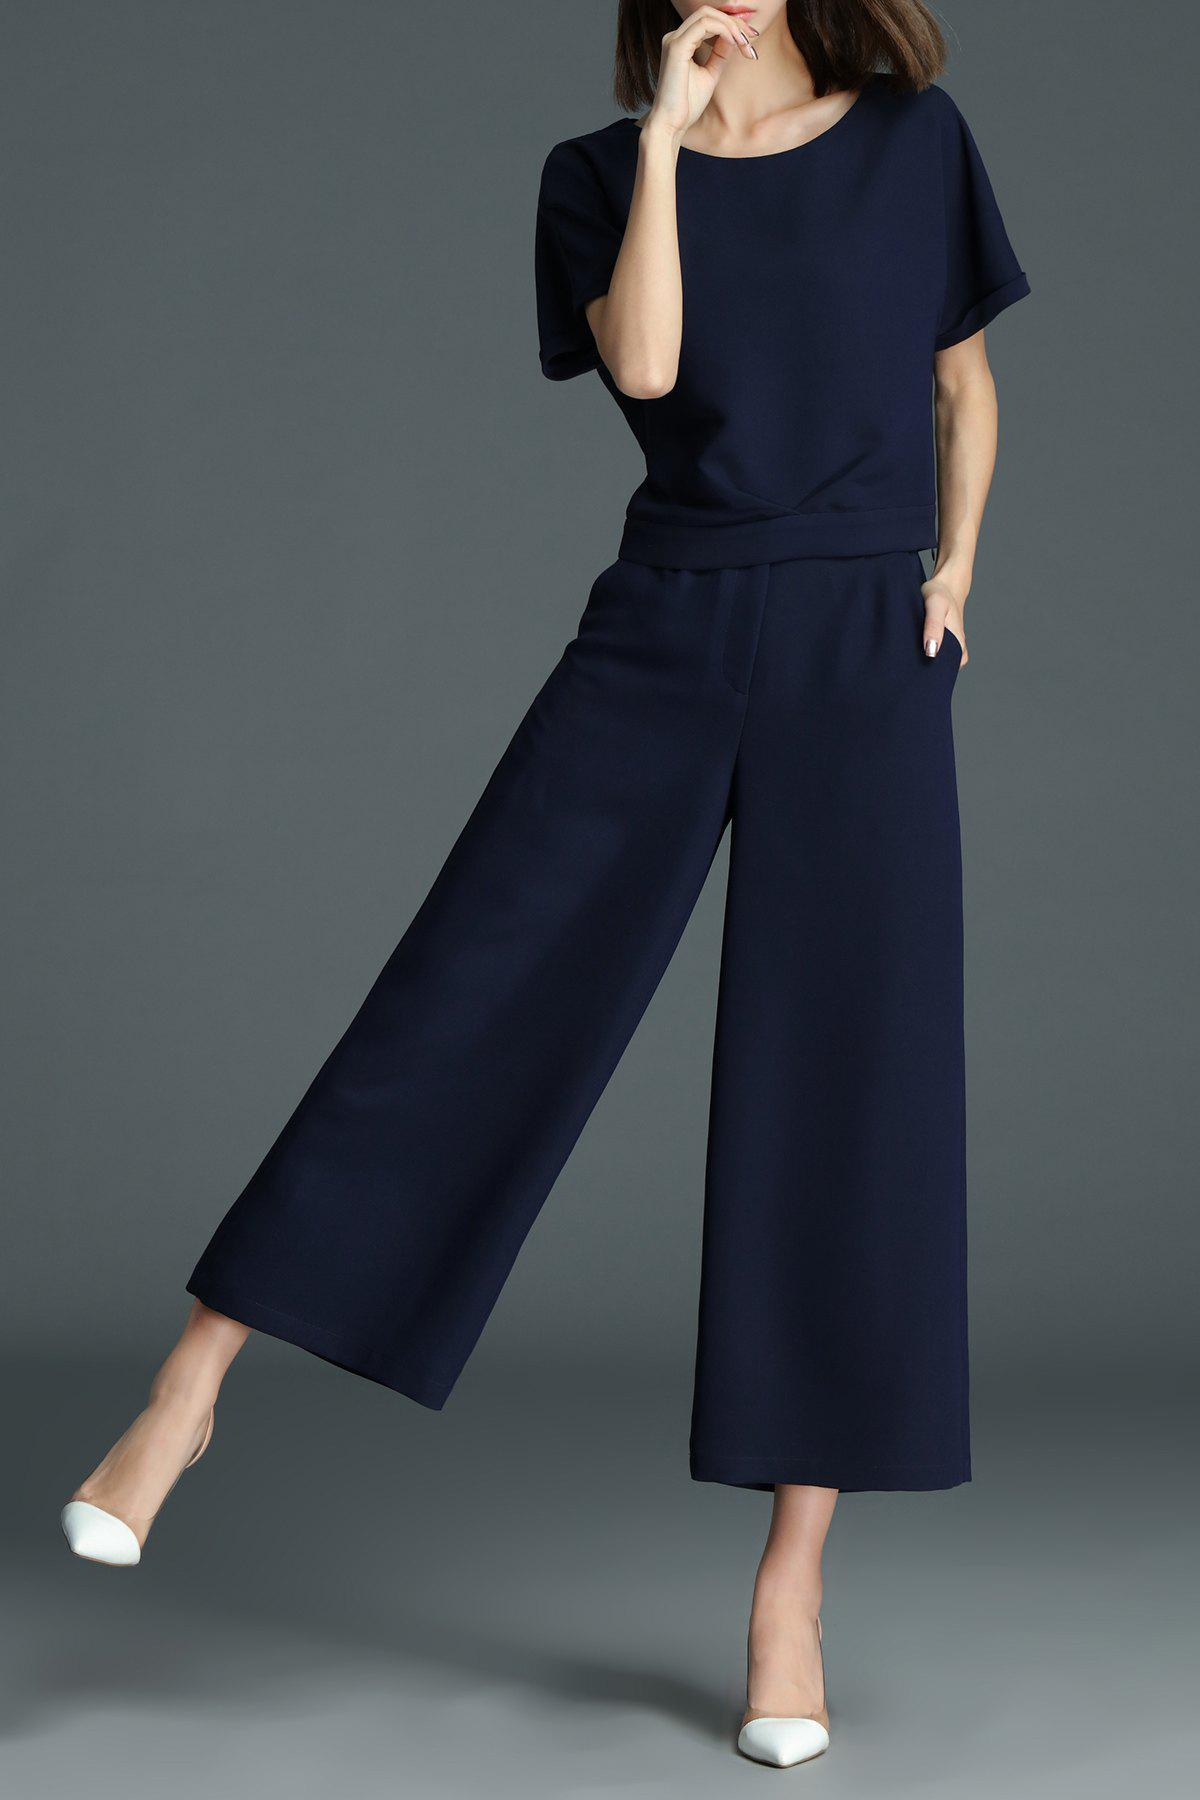 Shop T-Shirt With Palazzo Pants